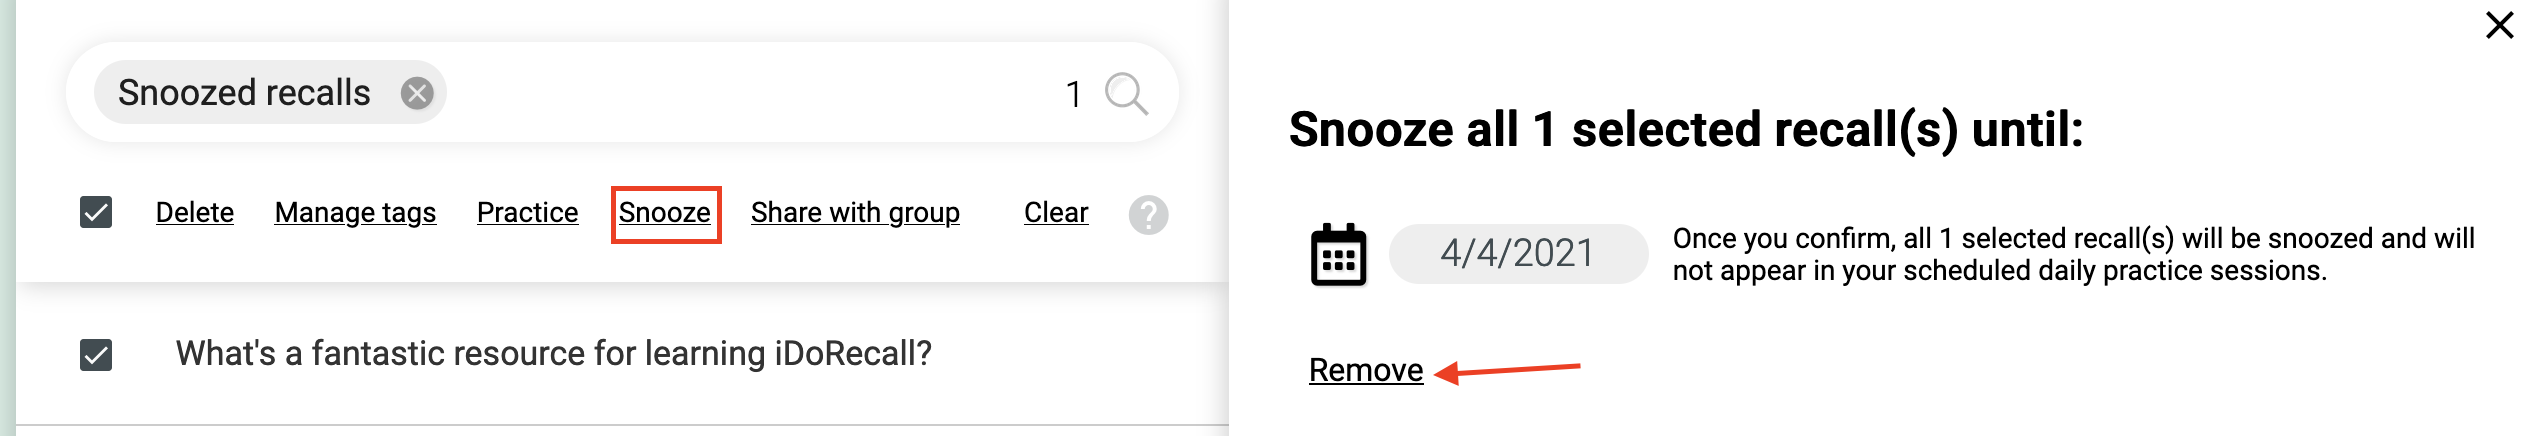 DEmonstration of how to remove snoozing.